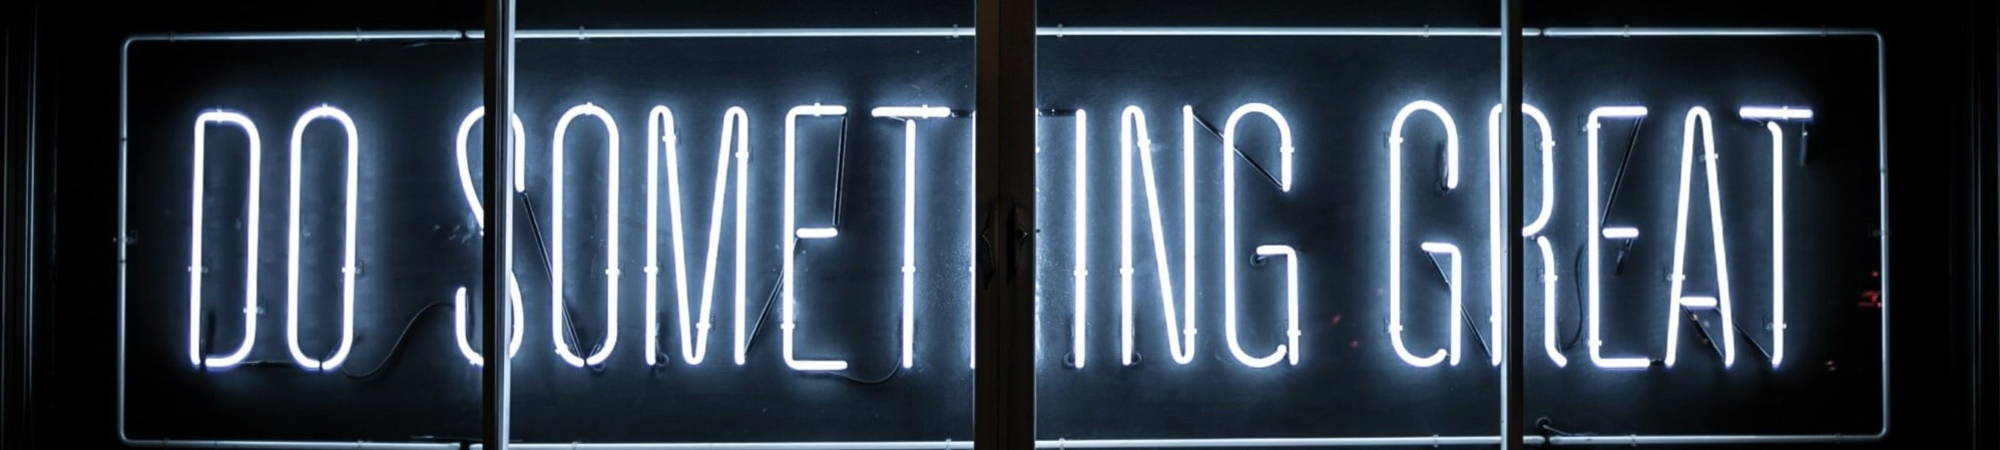 Do Something Great in Neon Lighting